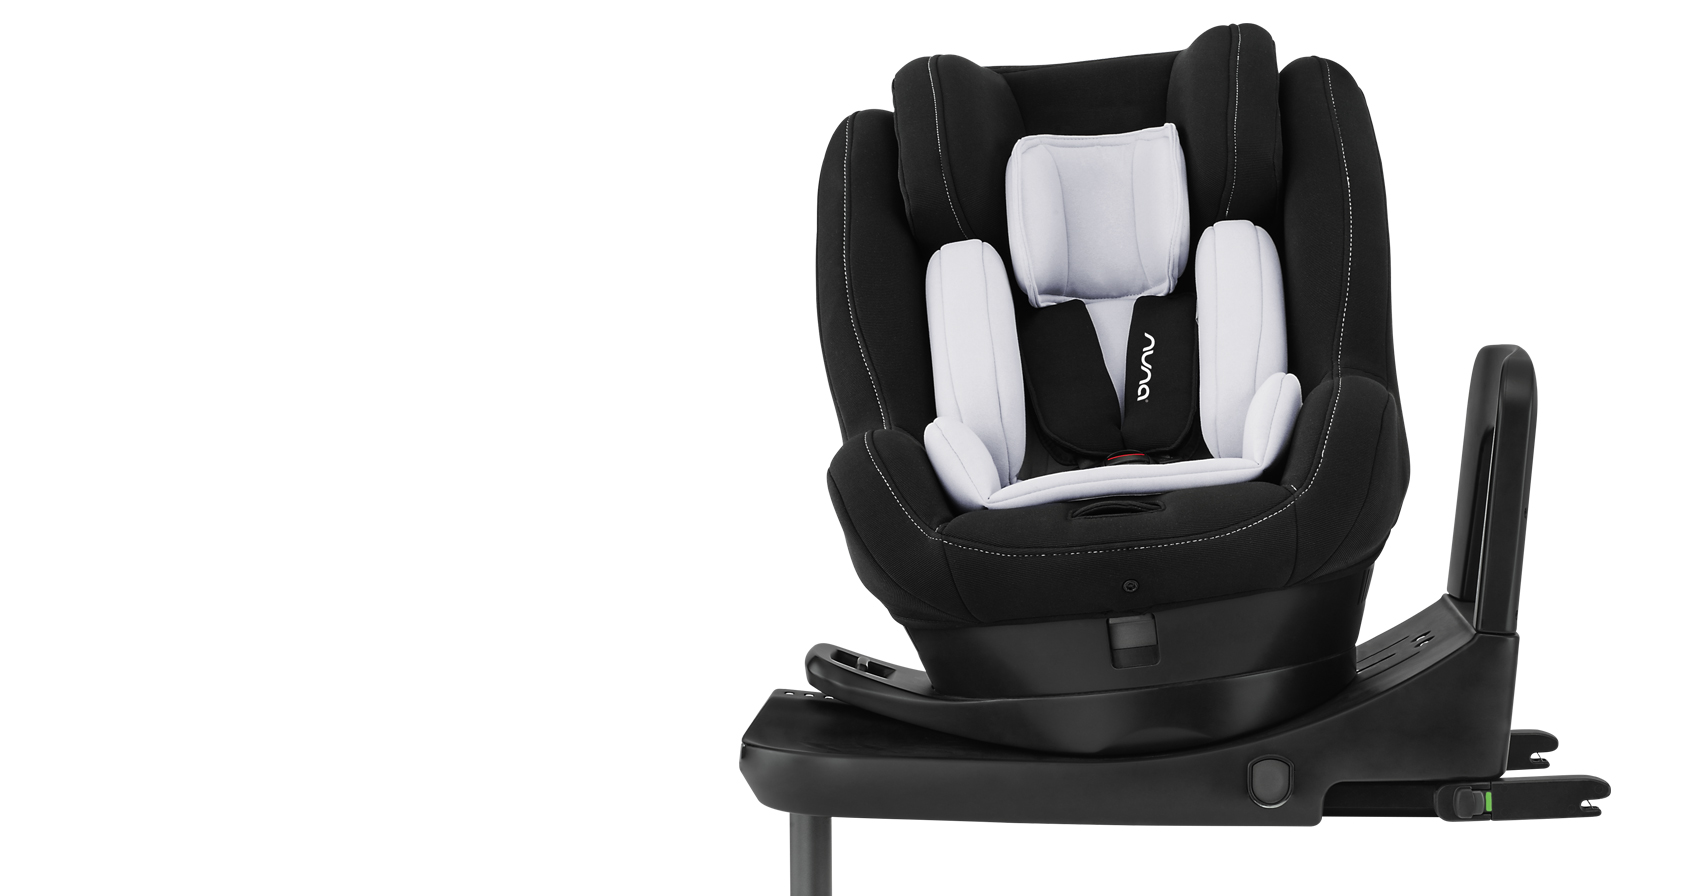 sc 1 st  The Unruffled Mum & The Nuna Rebl car seat battle u2013 The Unruffled Mum